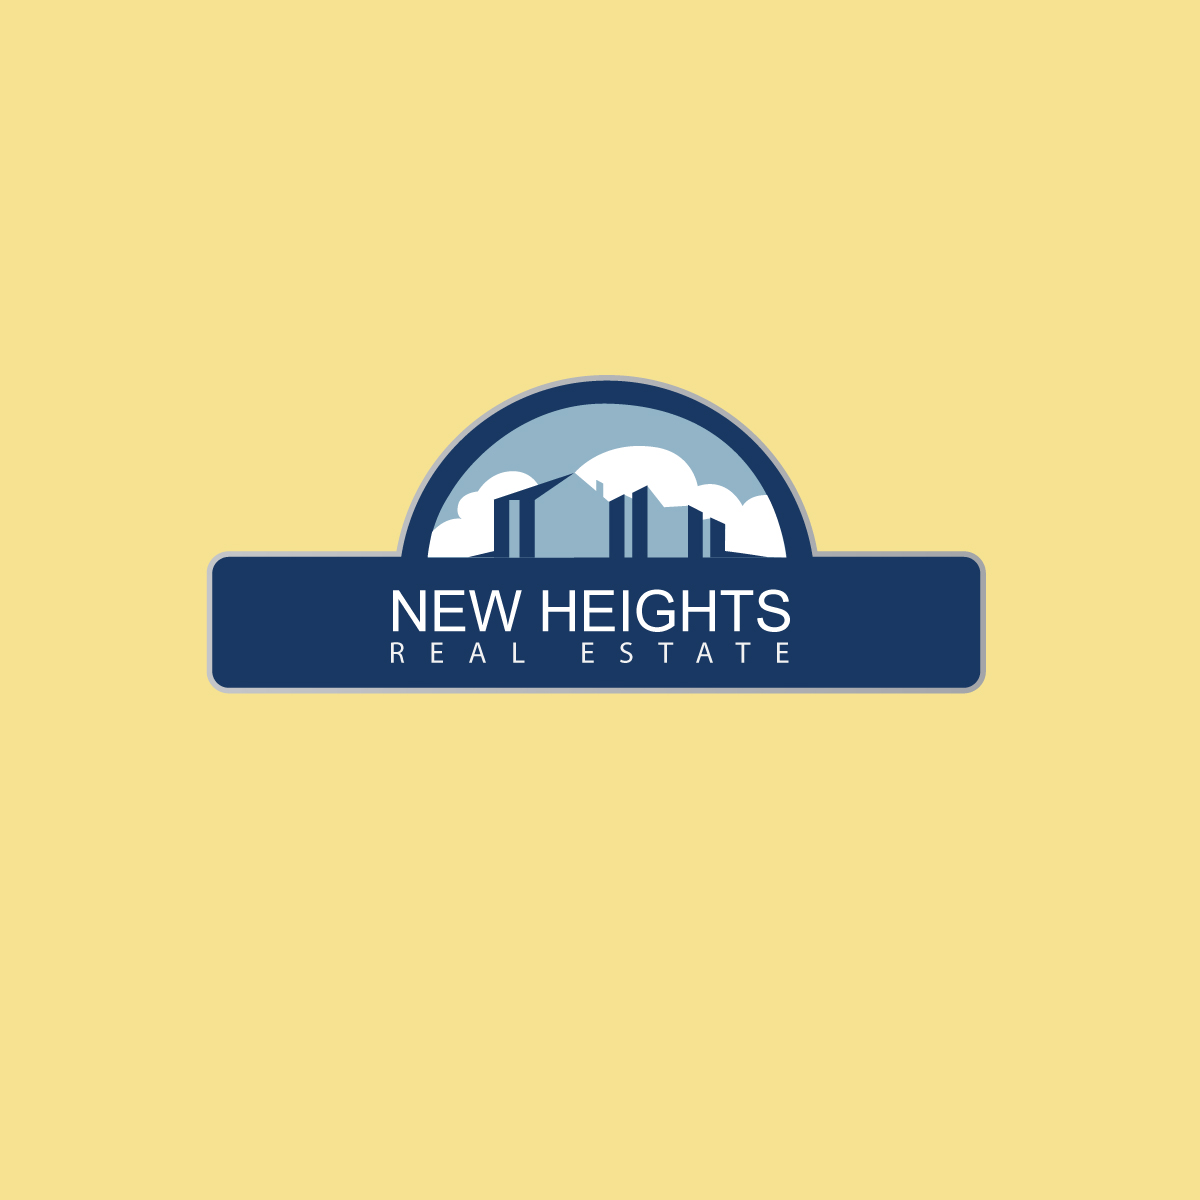 Winning Logo Design for New Heights Real Estate